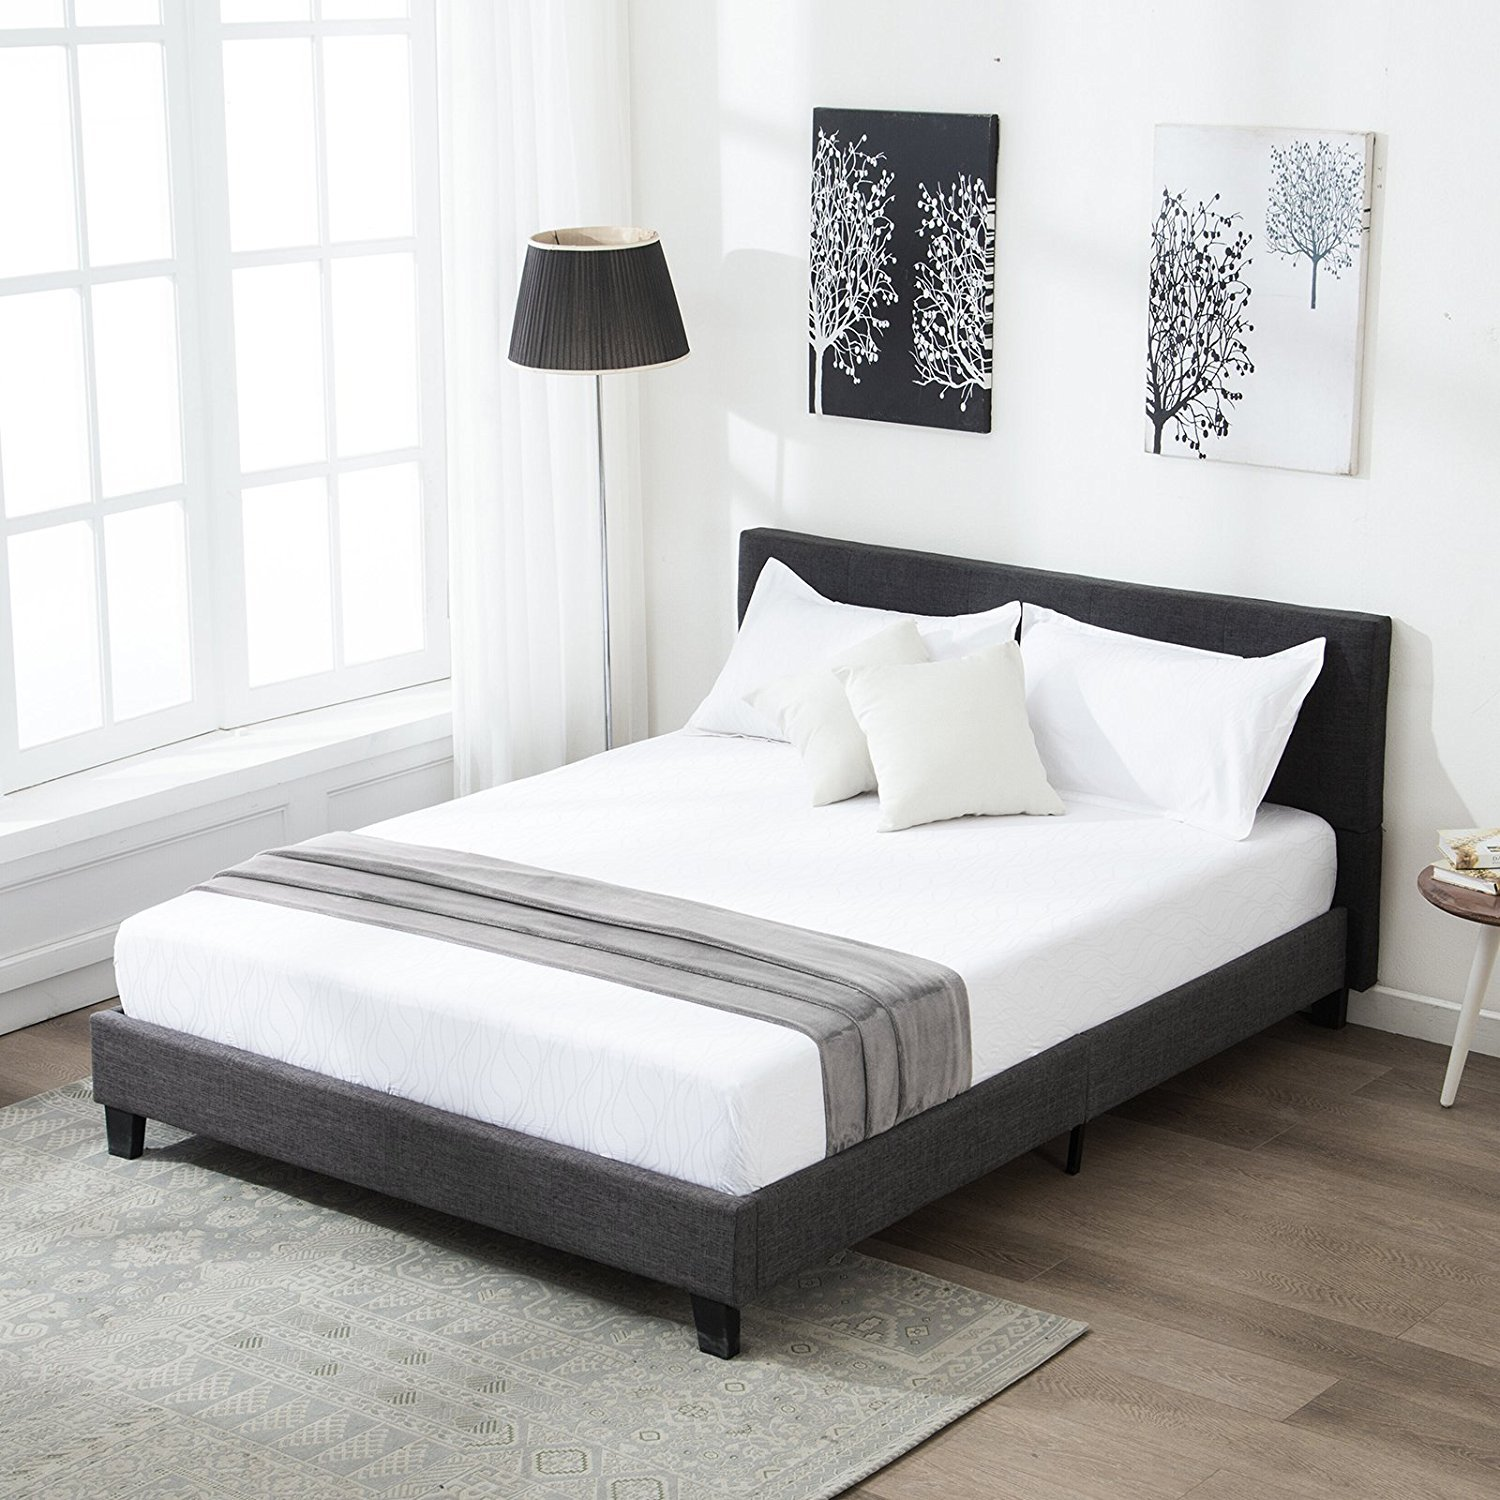 Modern Contemporary Wave-Like Curve Upholstered Platform Bed LED Lights Low Profile Venice White Black, Queen